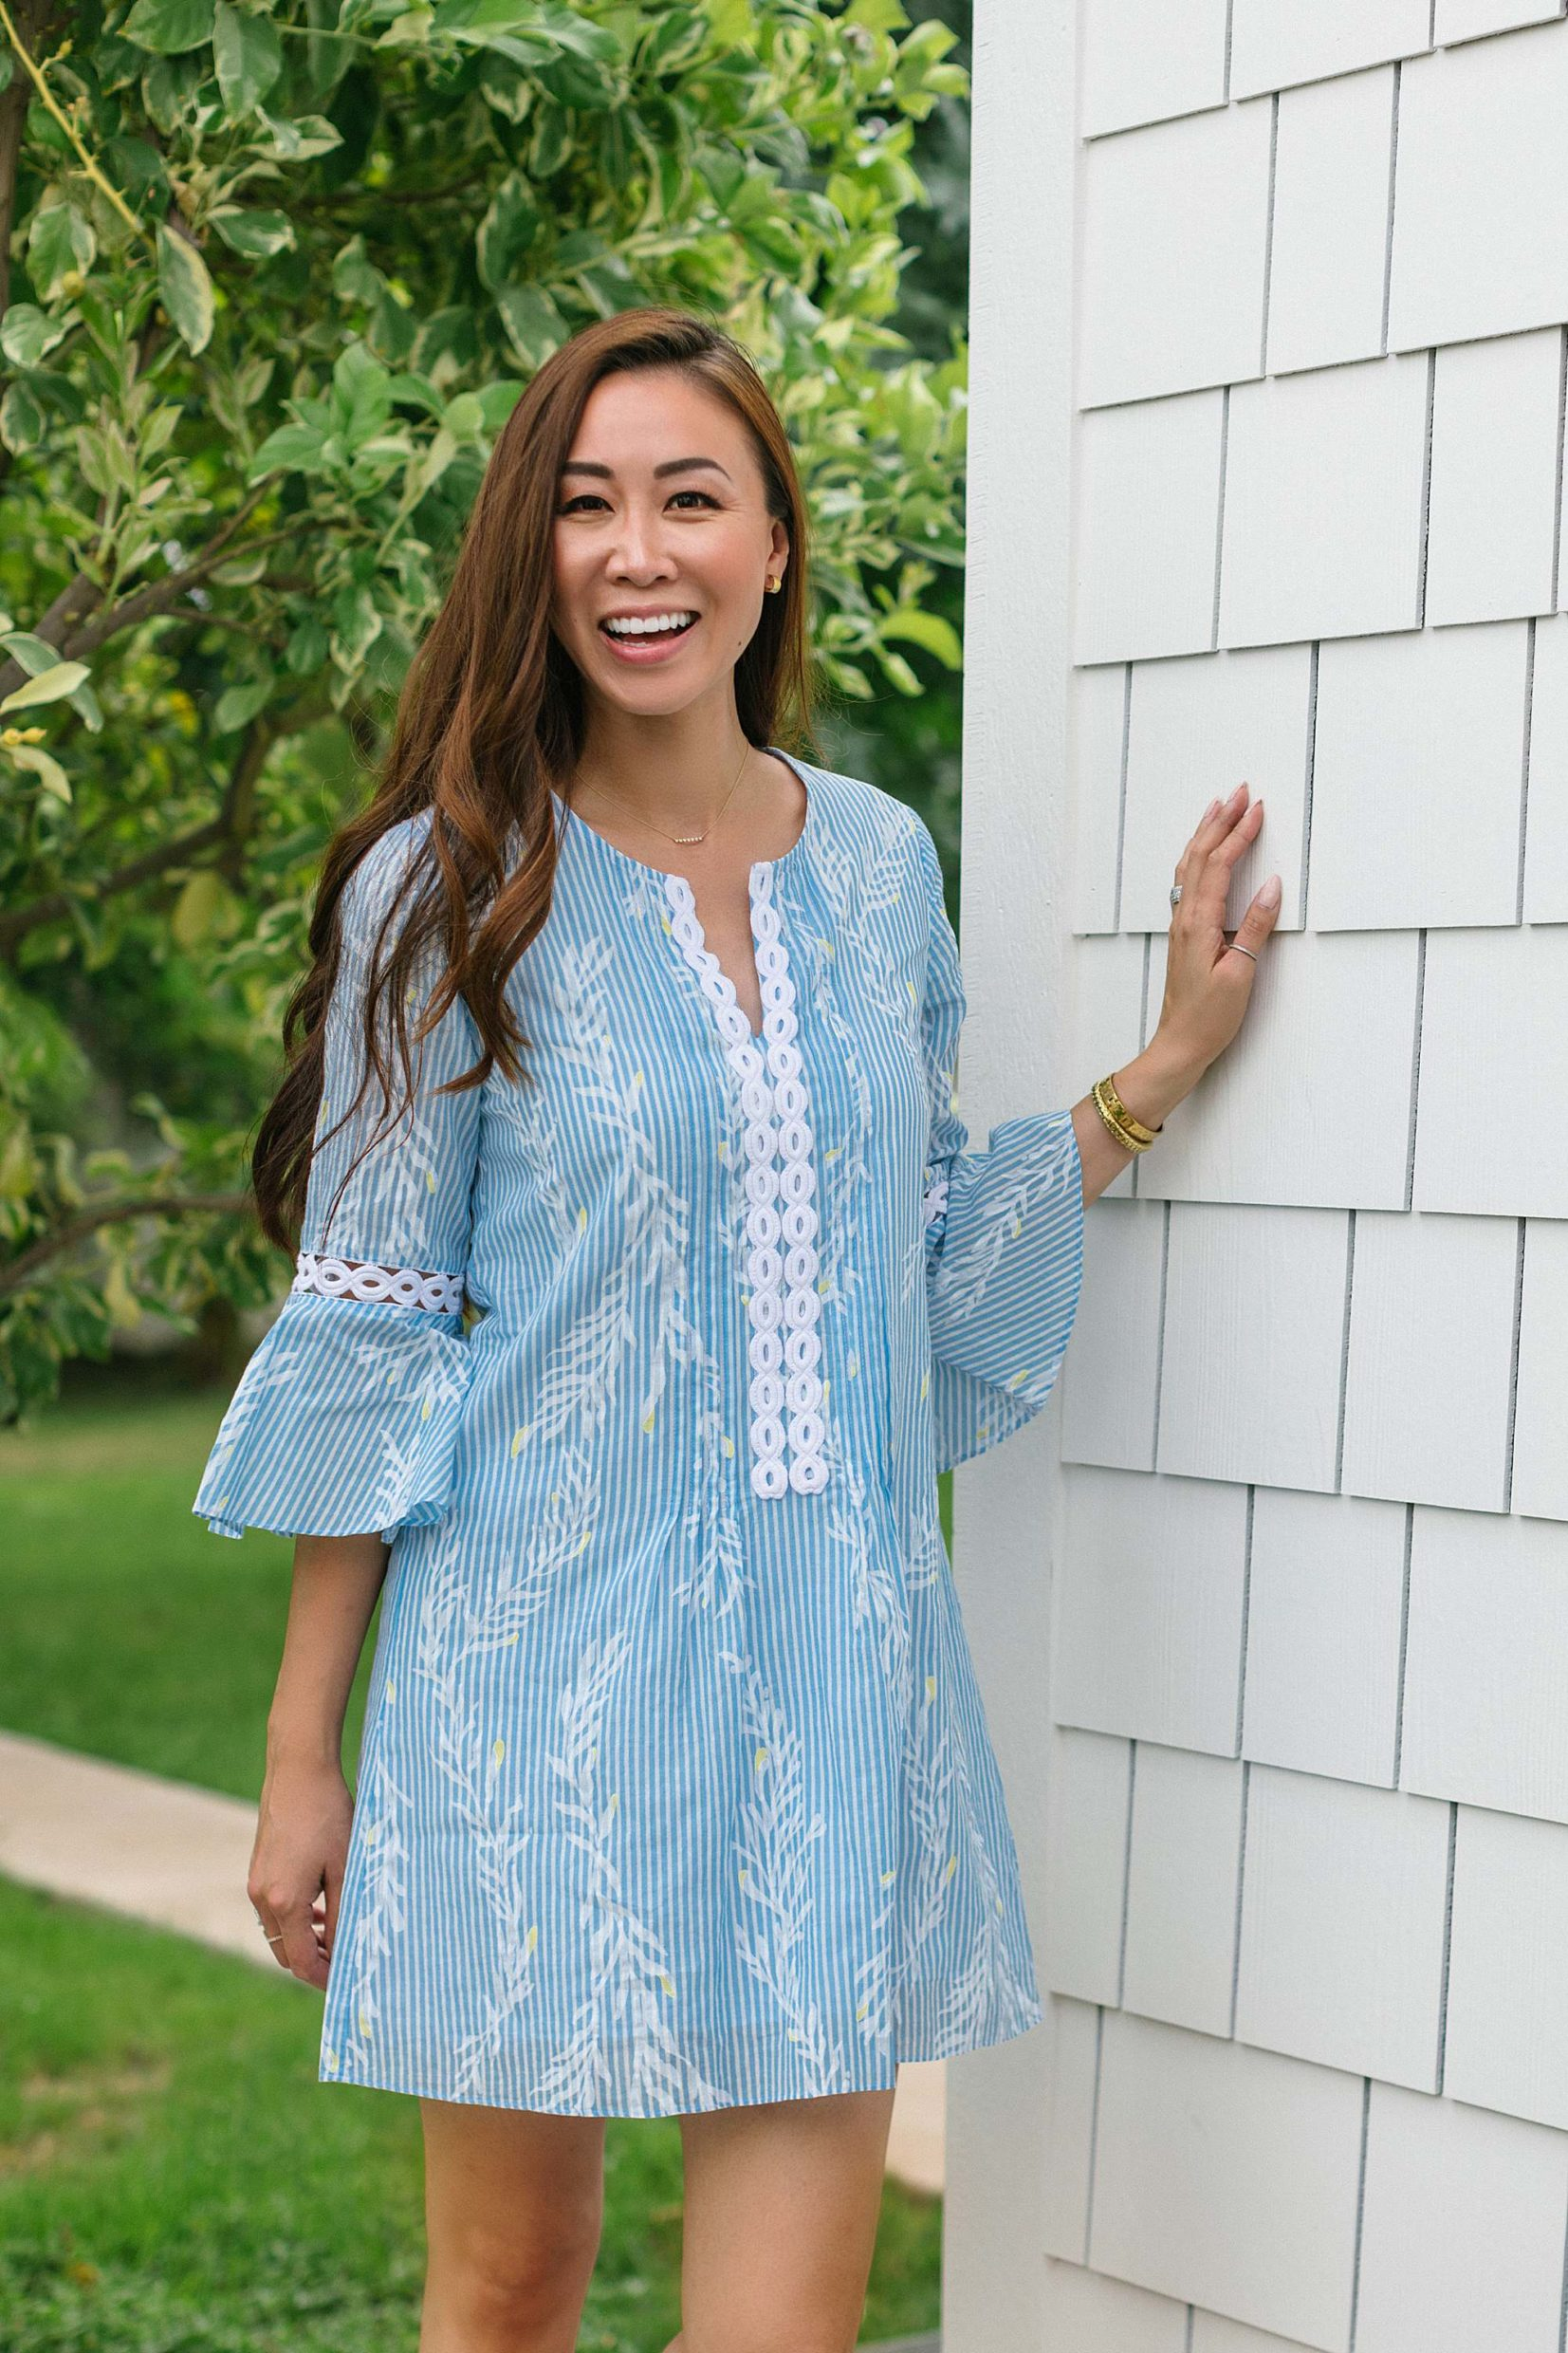 Hollie Tunic Dress lightweight cotton dress Lilly Pulitzer on Diana Elizabeth walking through orchard backyard